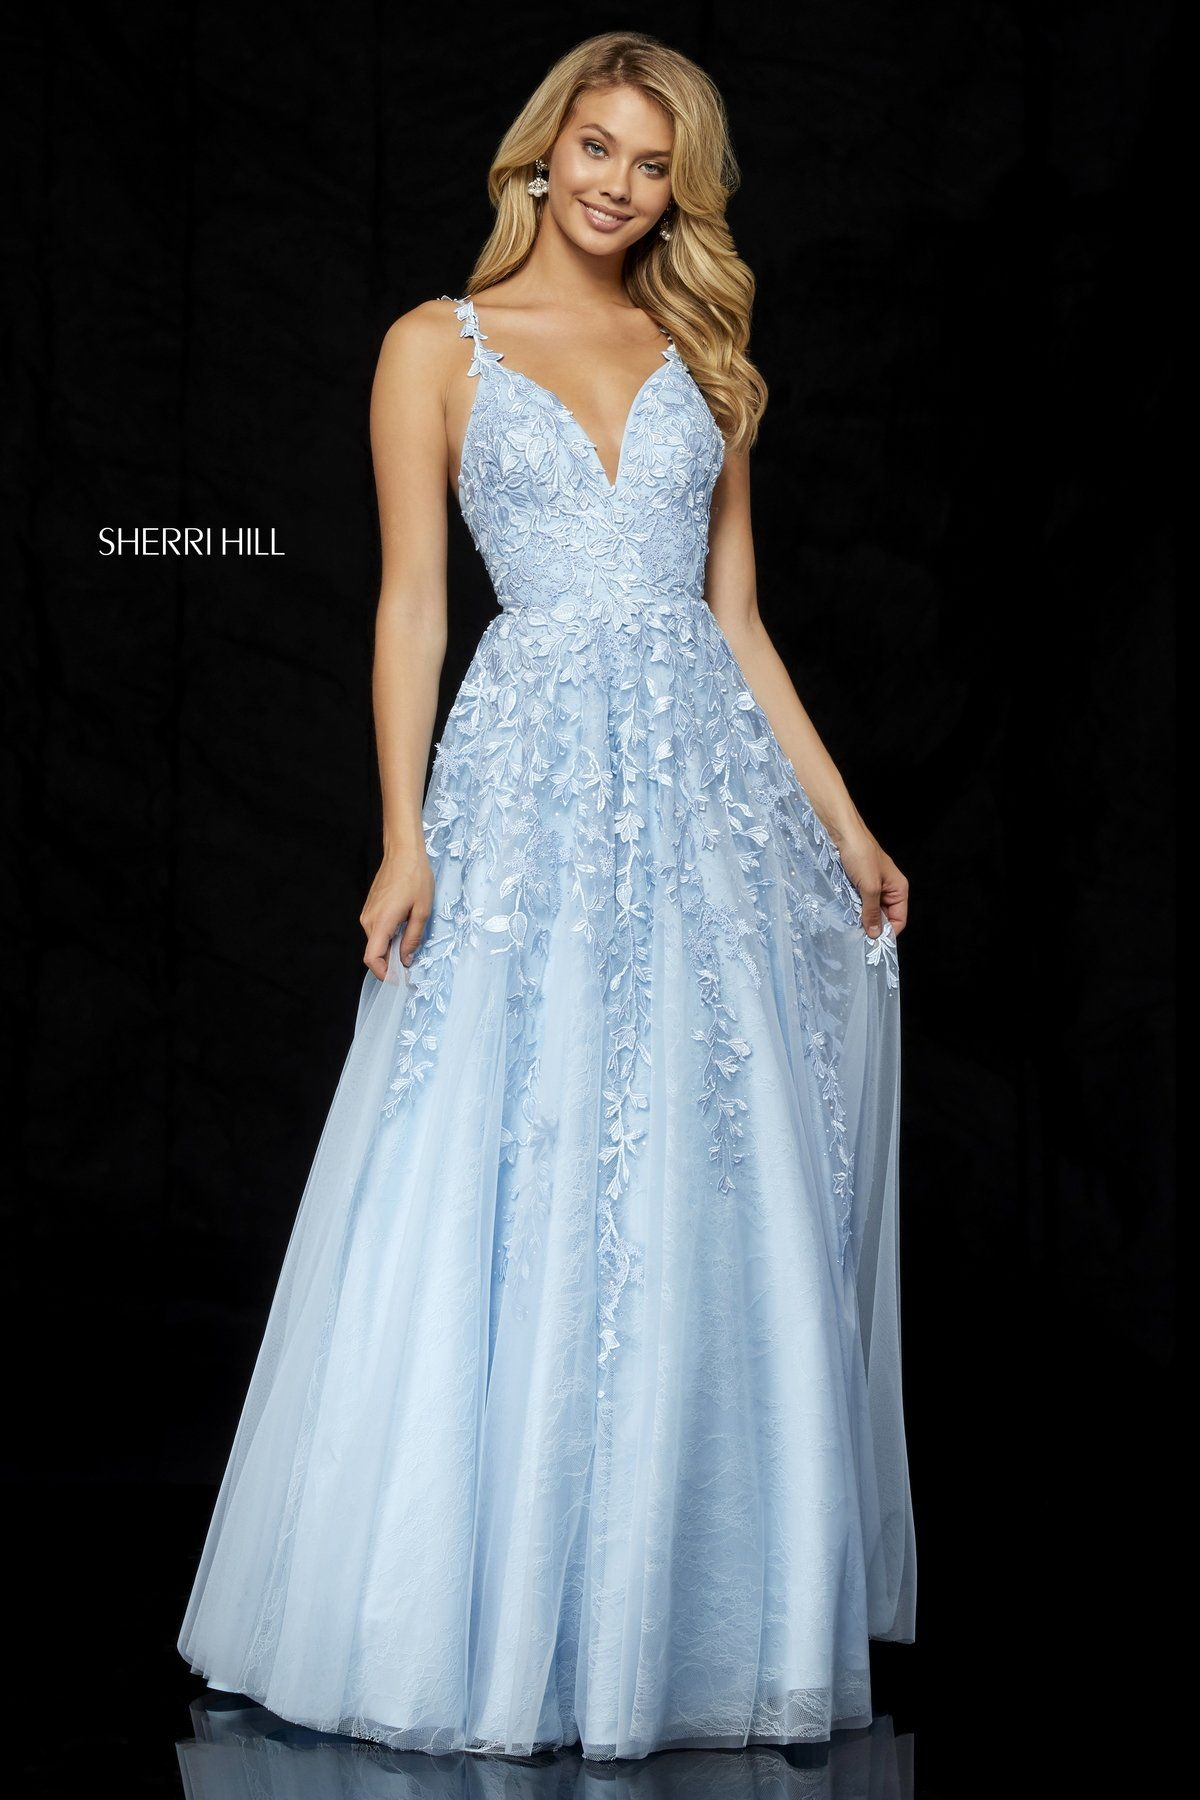 6c81e3c17c7e Buy Sherri Hill 52342 Tulle Homecoming Dress today at MadameBridal.com  authorized retailer store. With every order get your free.